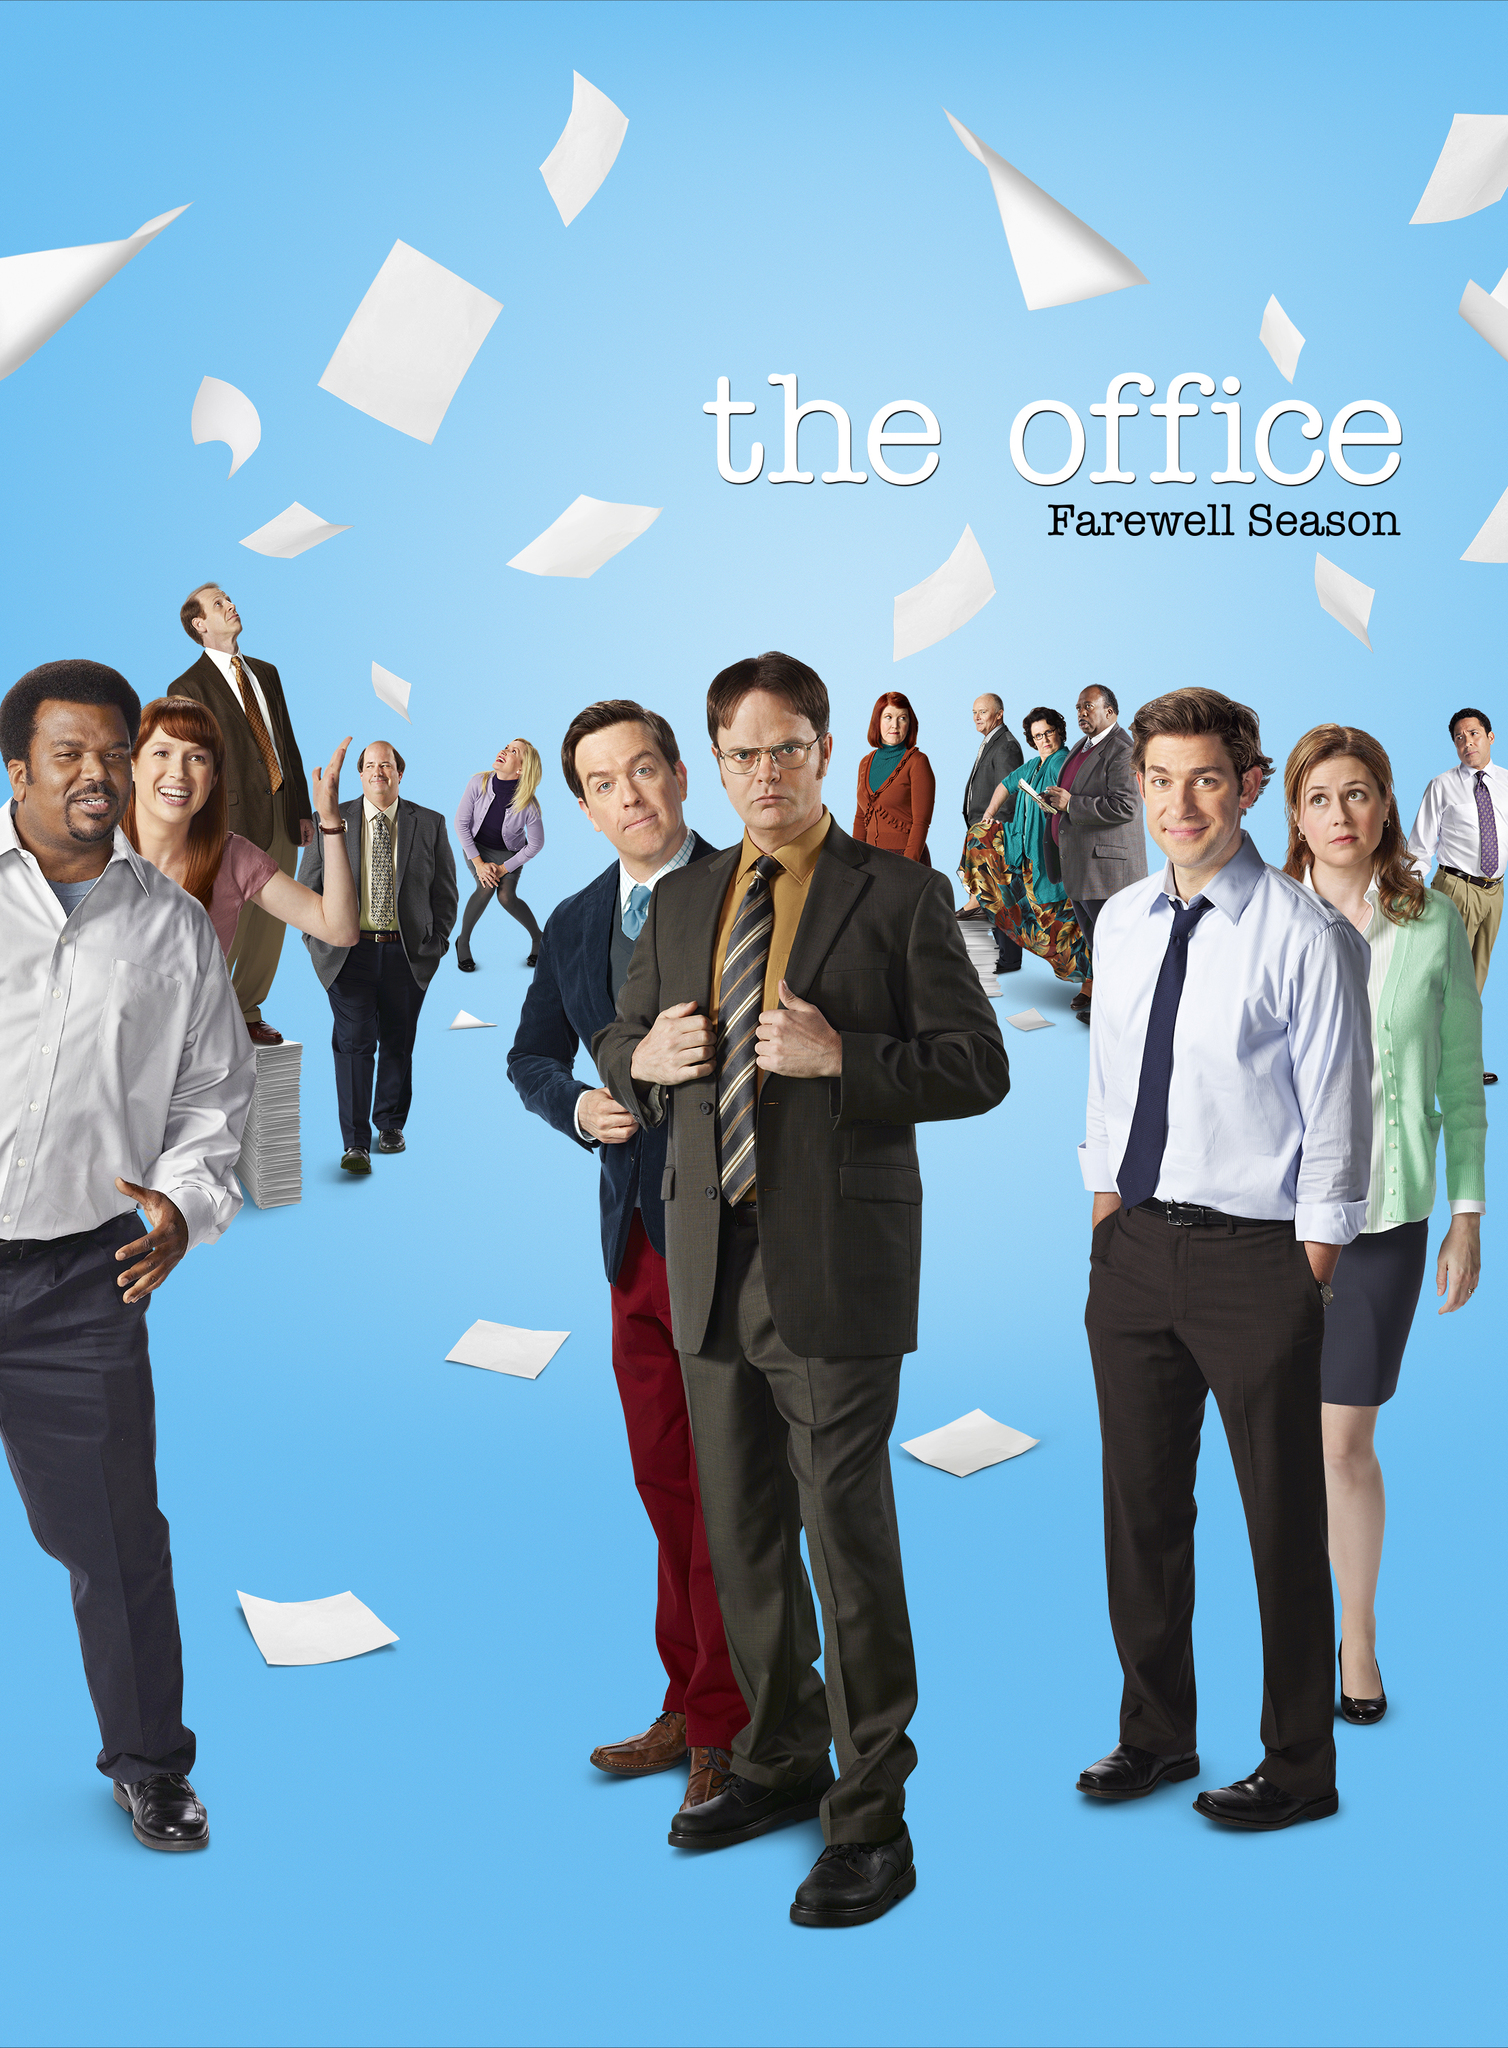 The Office (TV Series 2005–2013) - IMDb